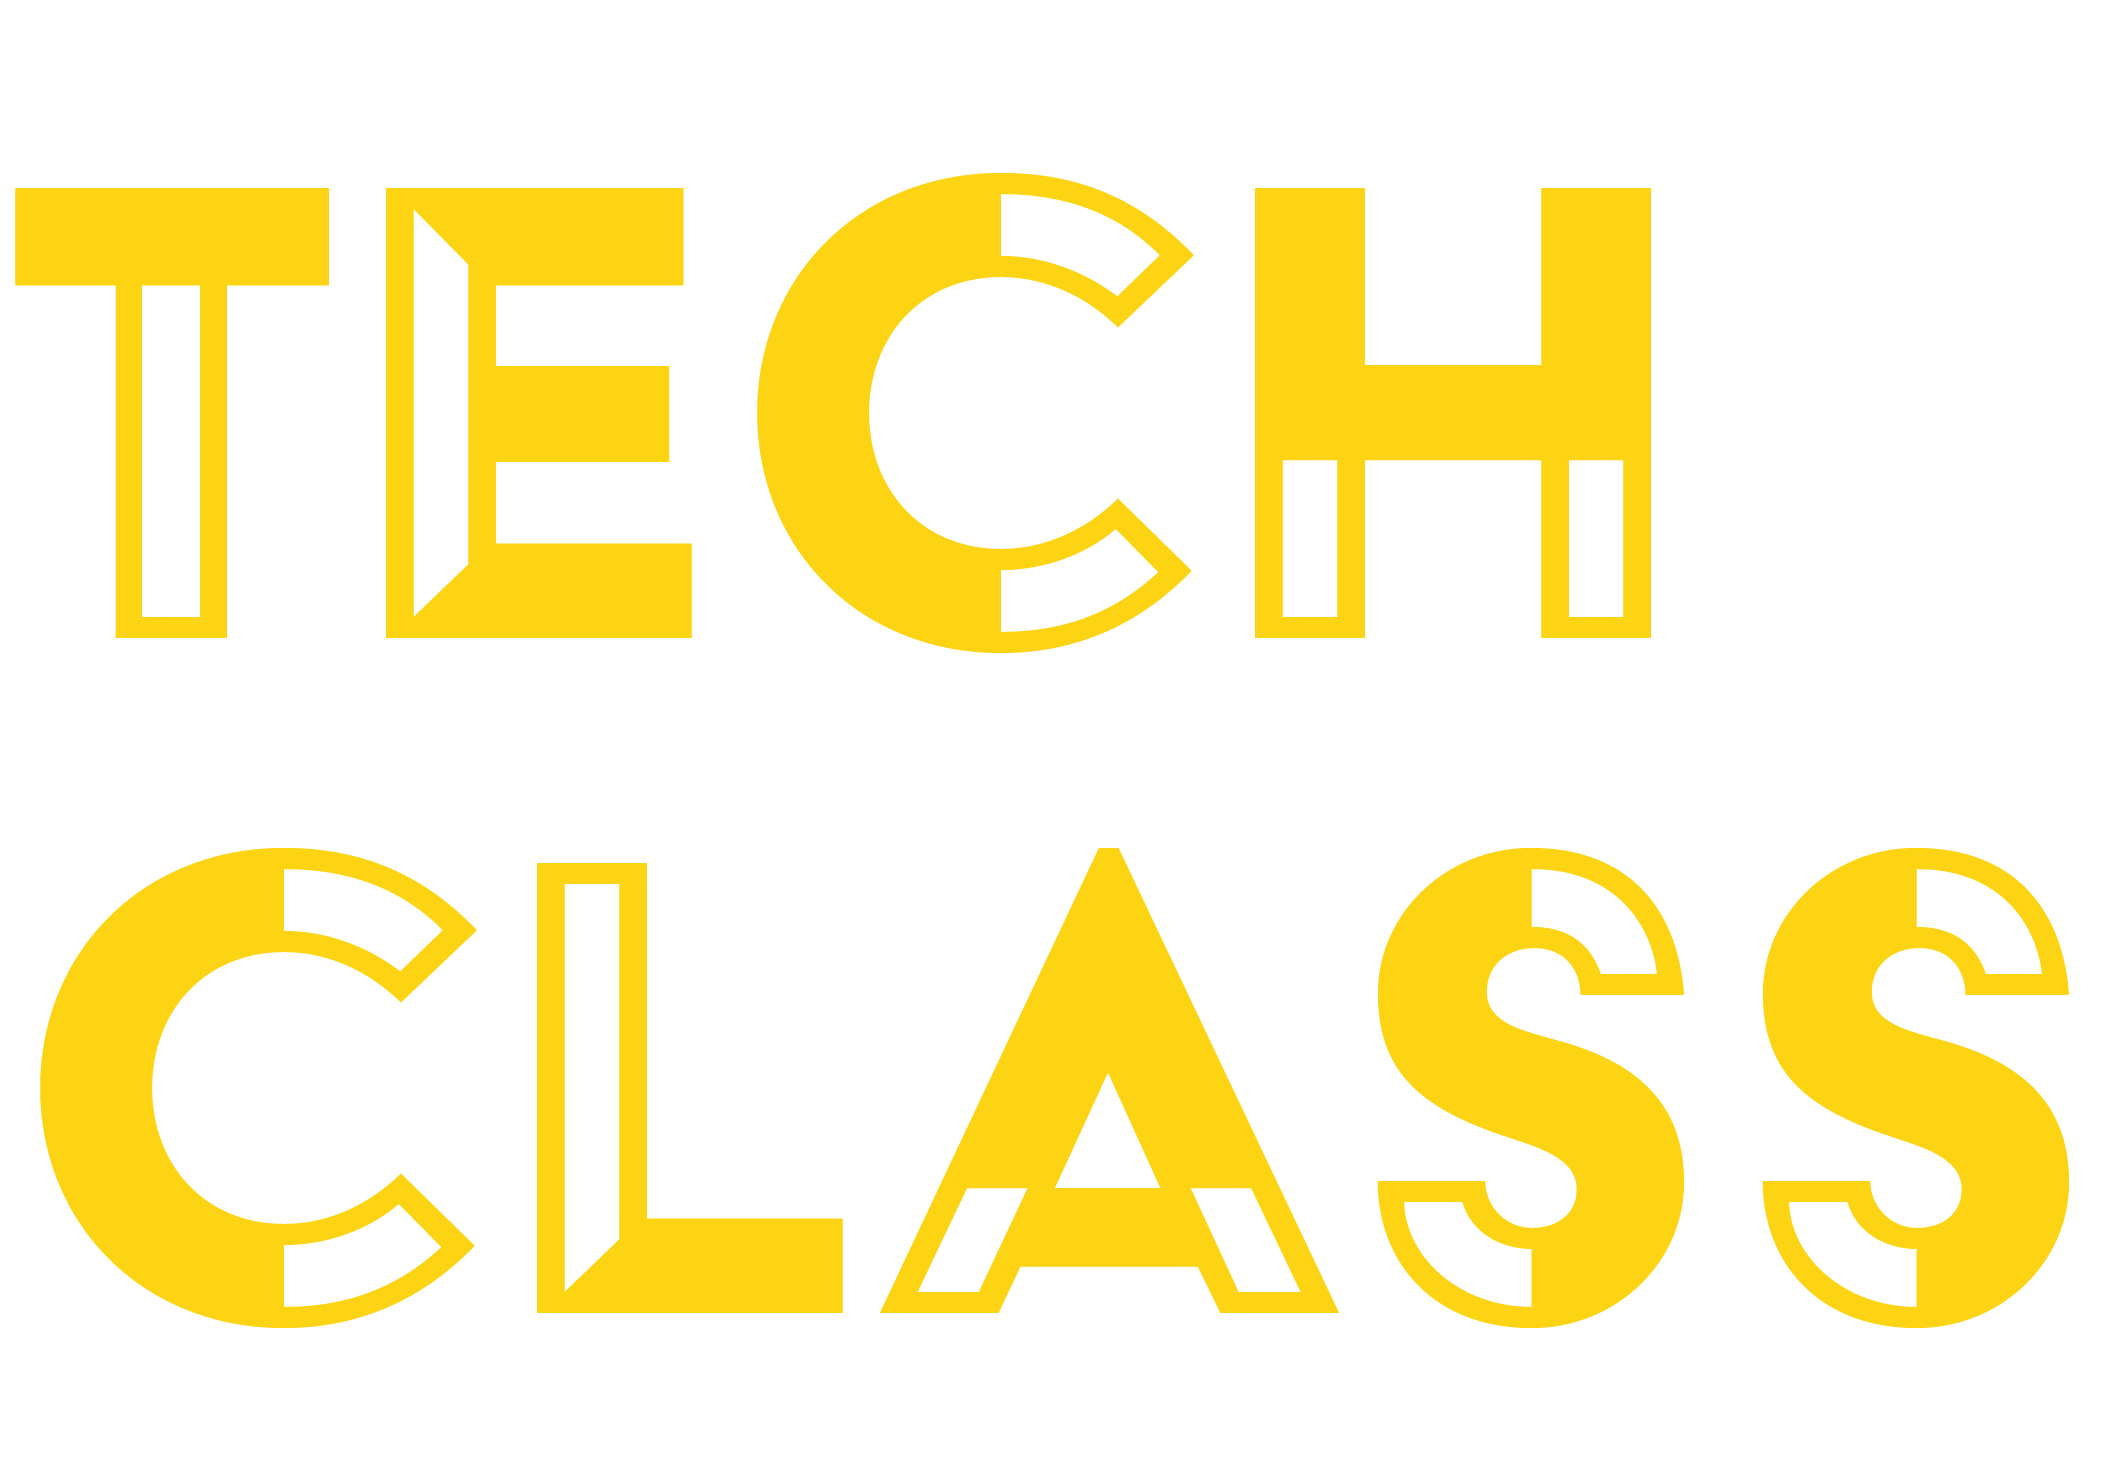 Elevate your School - Does your STEM Program have 3D Printers, Drones and Robots? Now it CAN!!